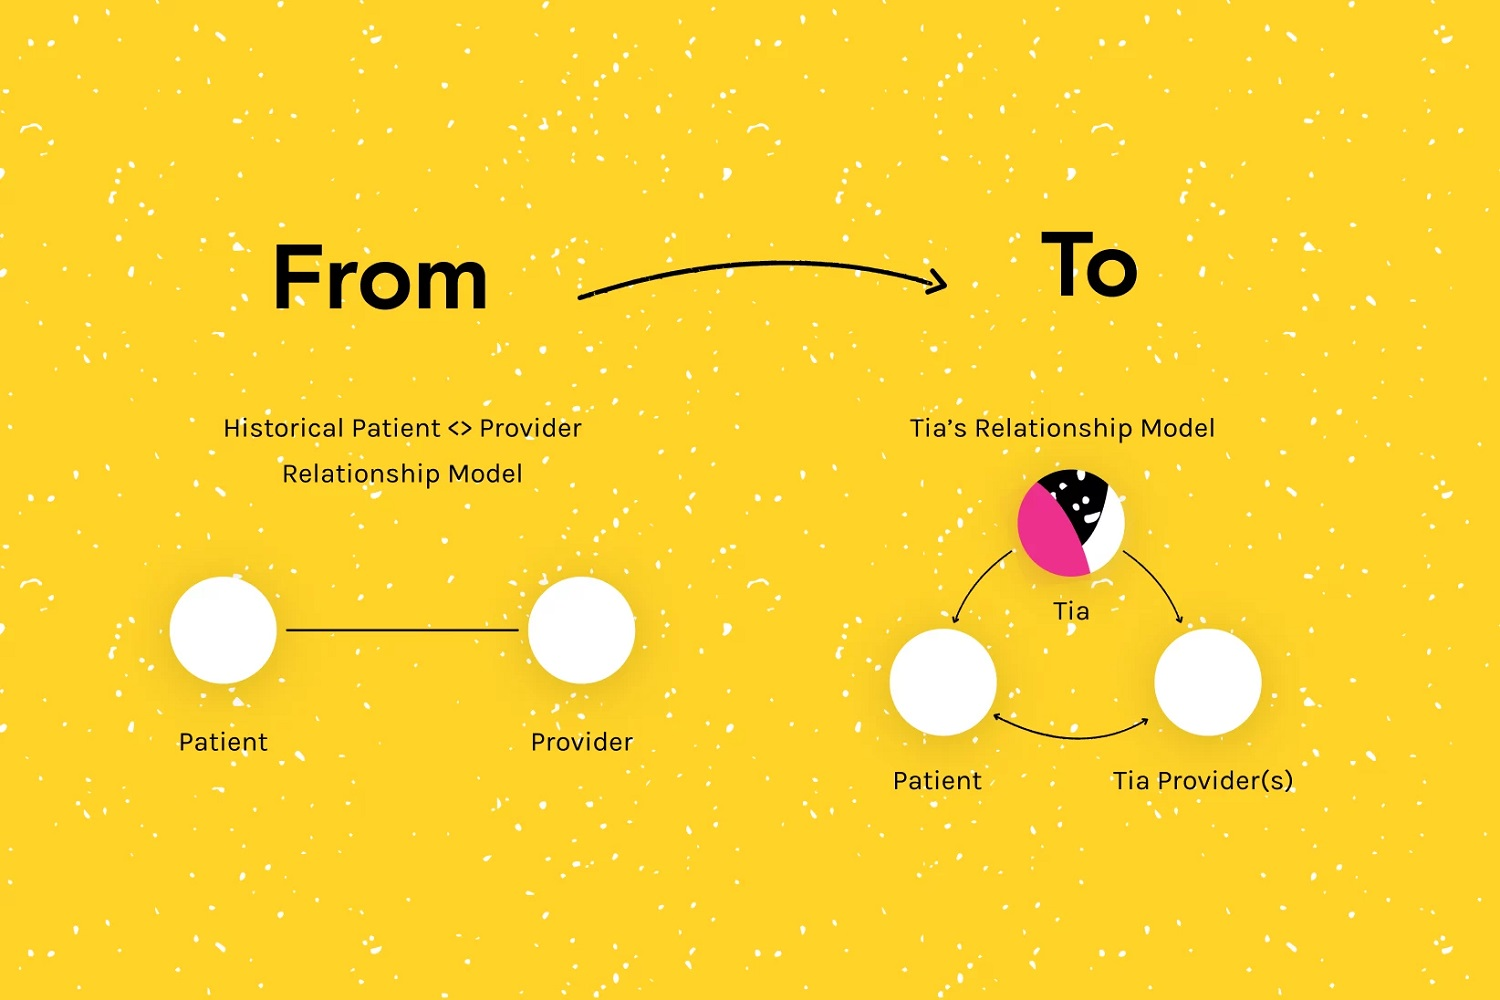 an illustration of how Tia works